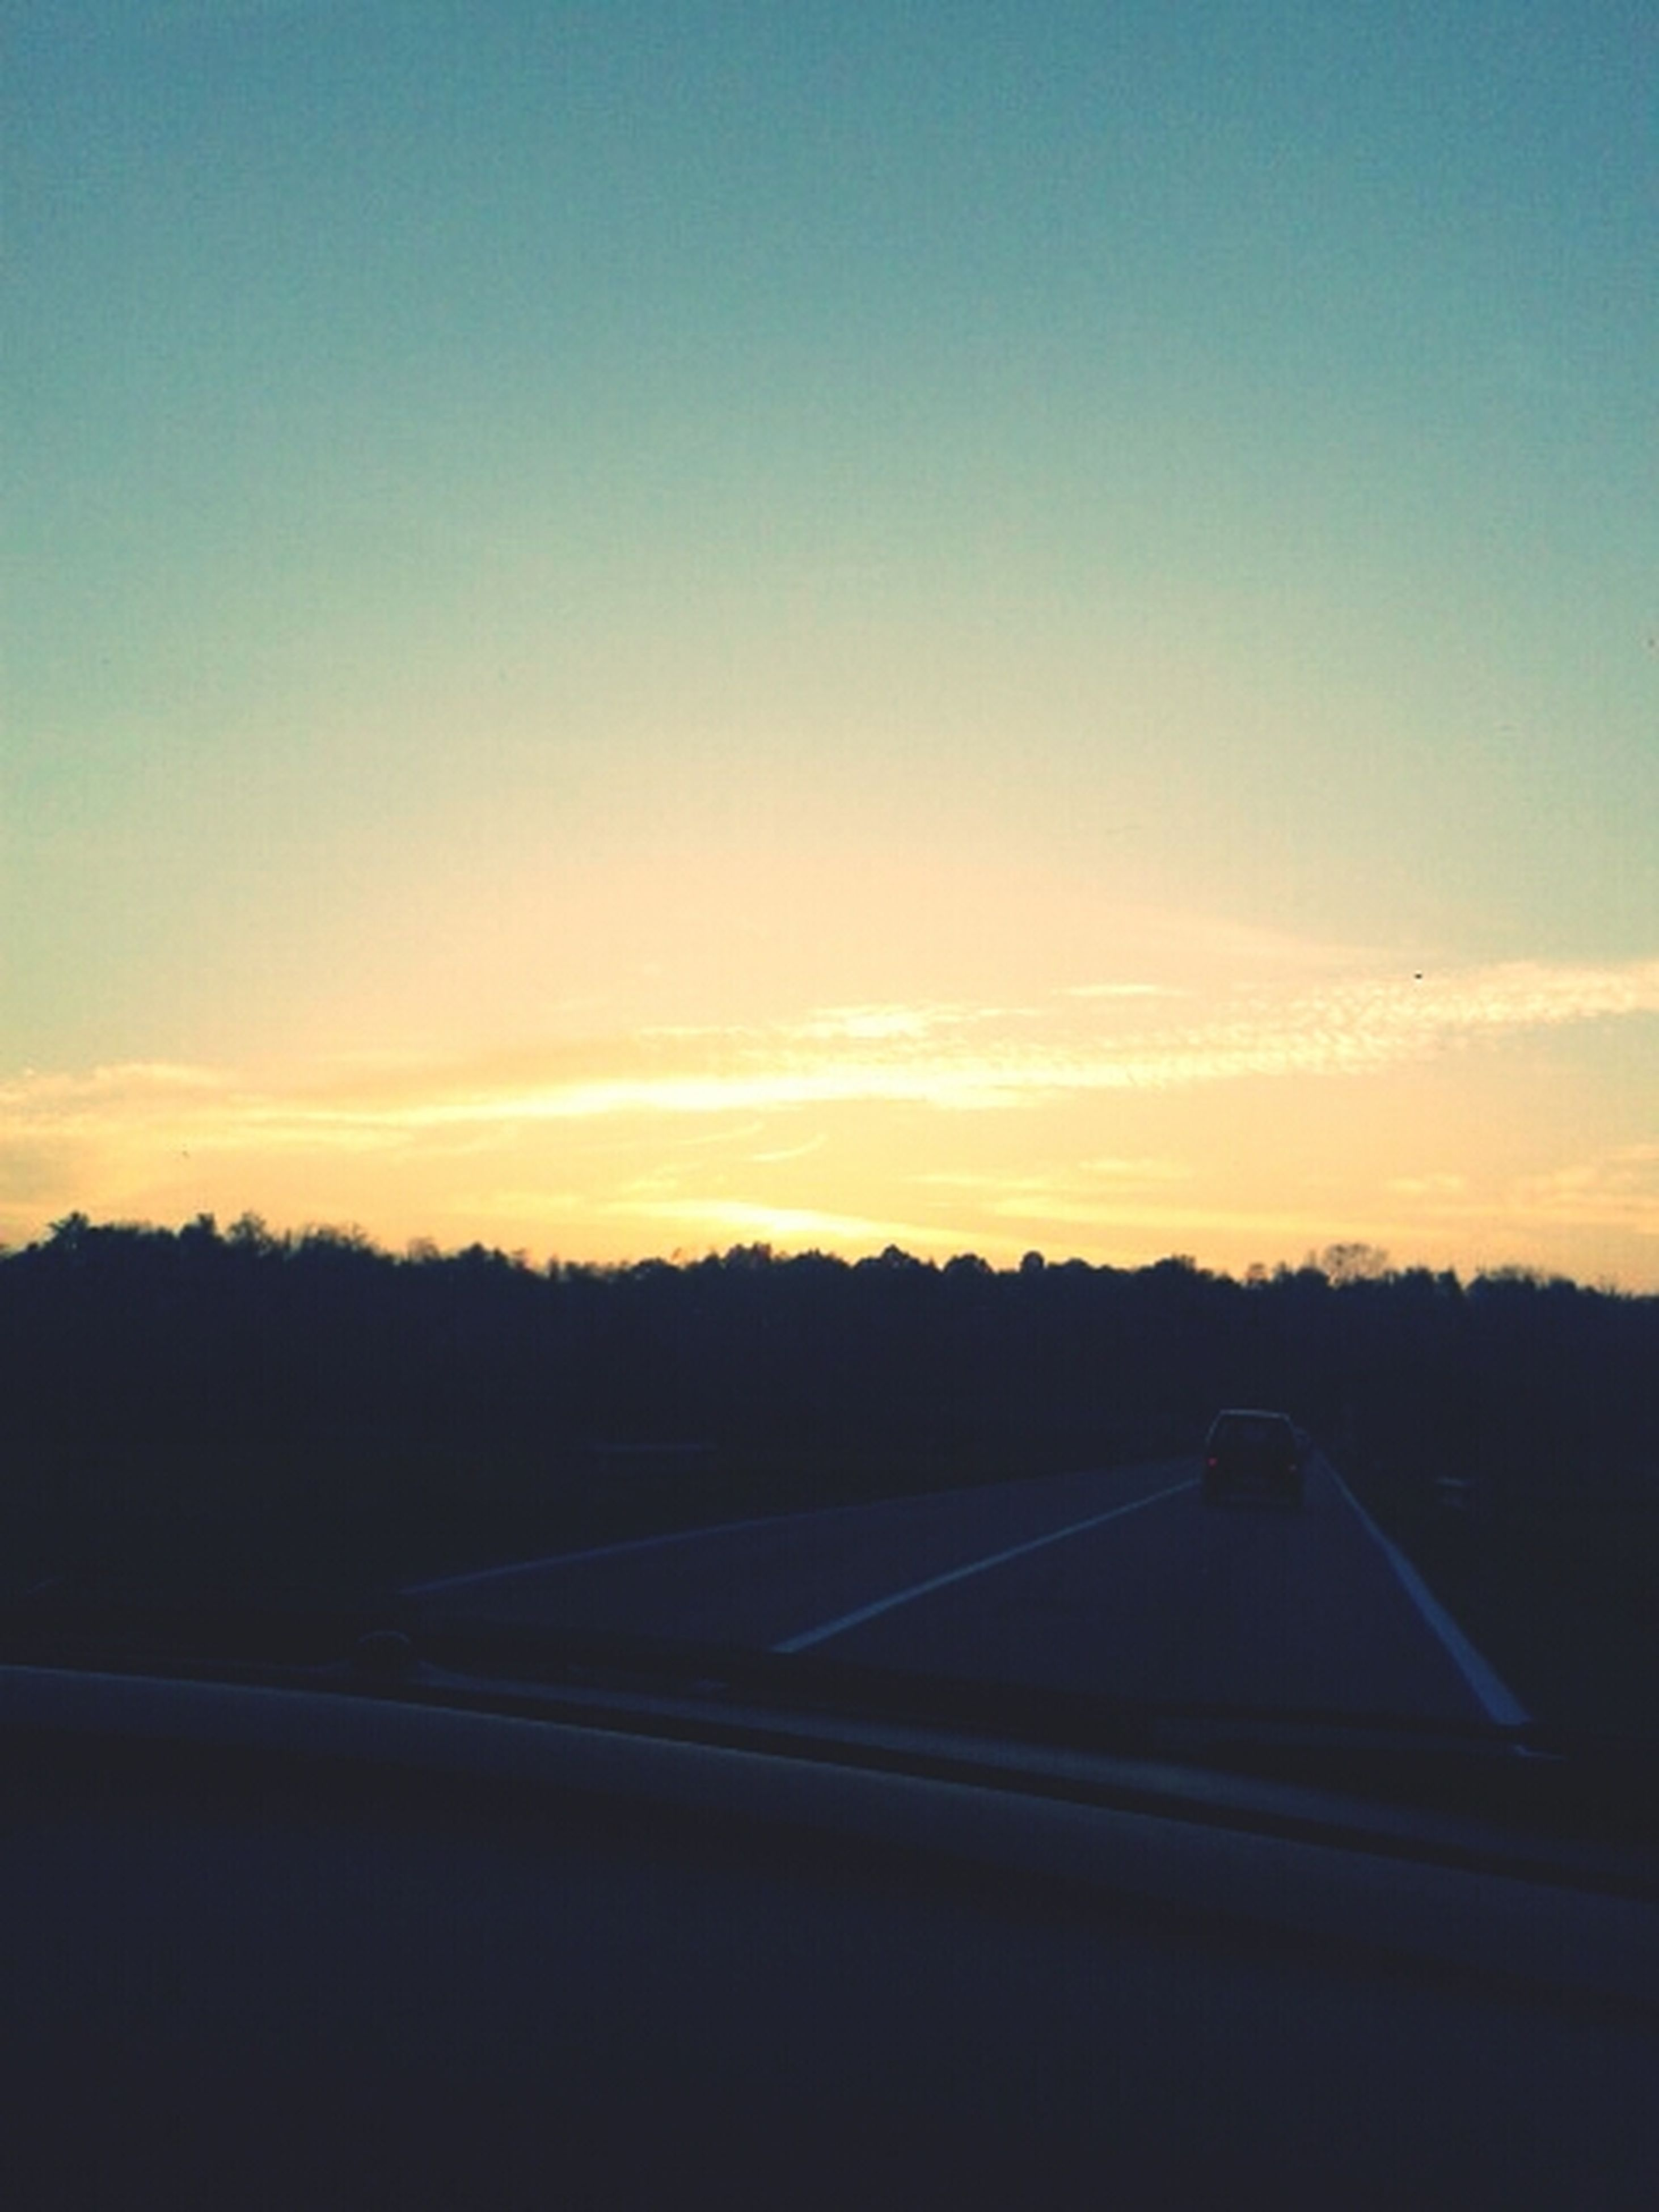 transportation, sunset, silhouette, sky, road, copy space, mode of transport, car, landscape, dusk, scenics, nature, beauty in nature, land vehicle, tranquility, clear sky, no people, tranquil scene, dark, road marking